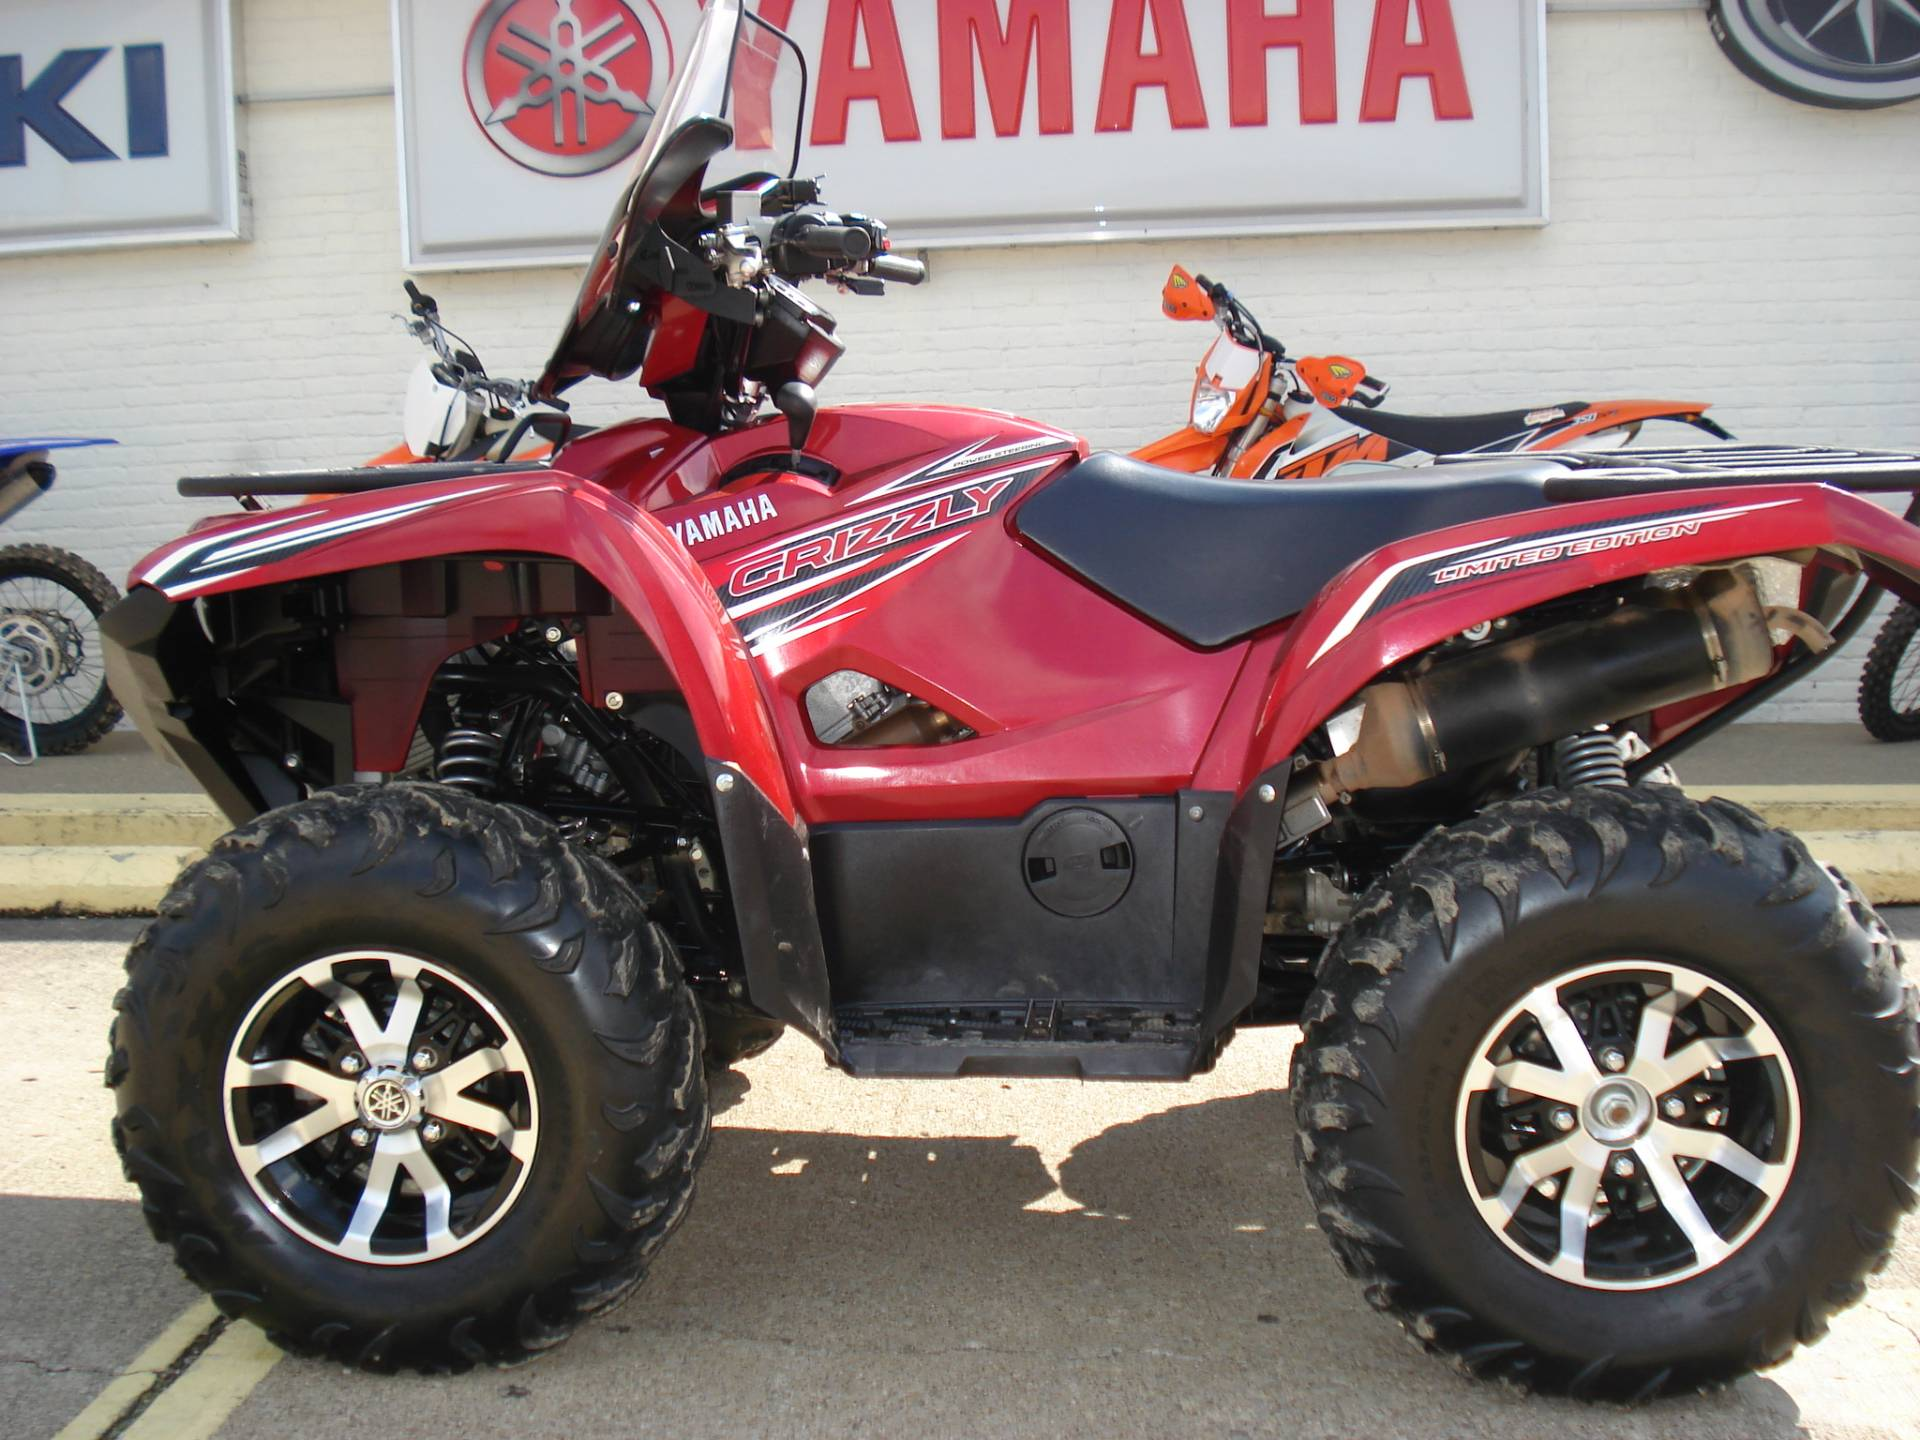 2016 Yamaha Grizzly EPS LE ATVs Waynesburg Pennsylvania on yamaha side by side, 2014 yamaha atv, yamaha phazer, yamaha kodiak atv, honda atv, yamaha 110cc atv, yamaha 4x4 atv, yamaha quads, yamaha raptor, yamaha mule atv, yamaha 50cc atv, yamaha 200 atv, yamaha banshee atv, yamaha wolverine, yamaha 450 atv, yamaha rhino, yamaha viking, yamaha warrior atv, yamaha blaster, yamaha motorcycles,